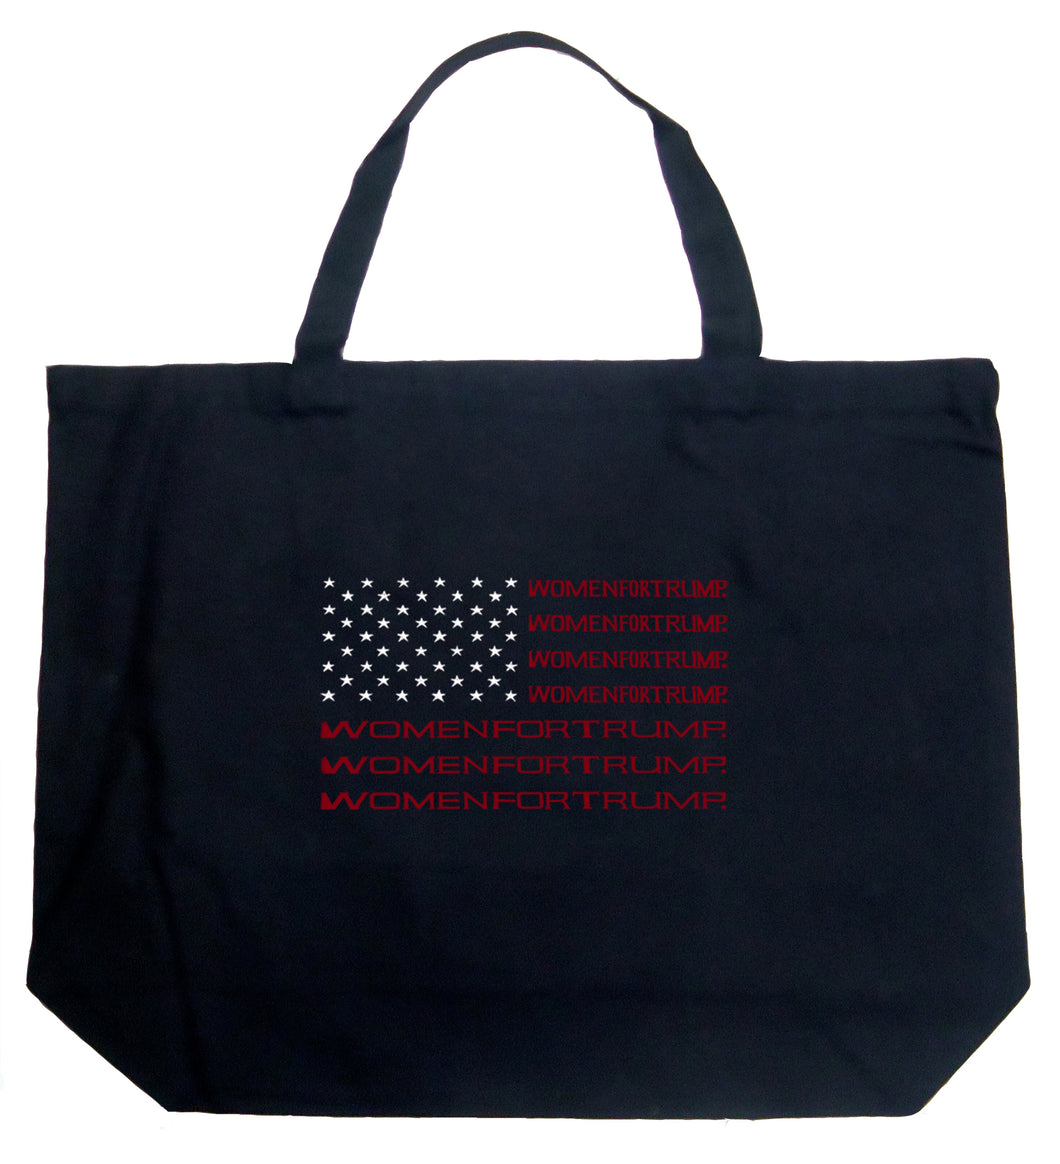 LA Pop Art Large Word Art Tote Bag - Women For Trump